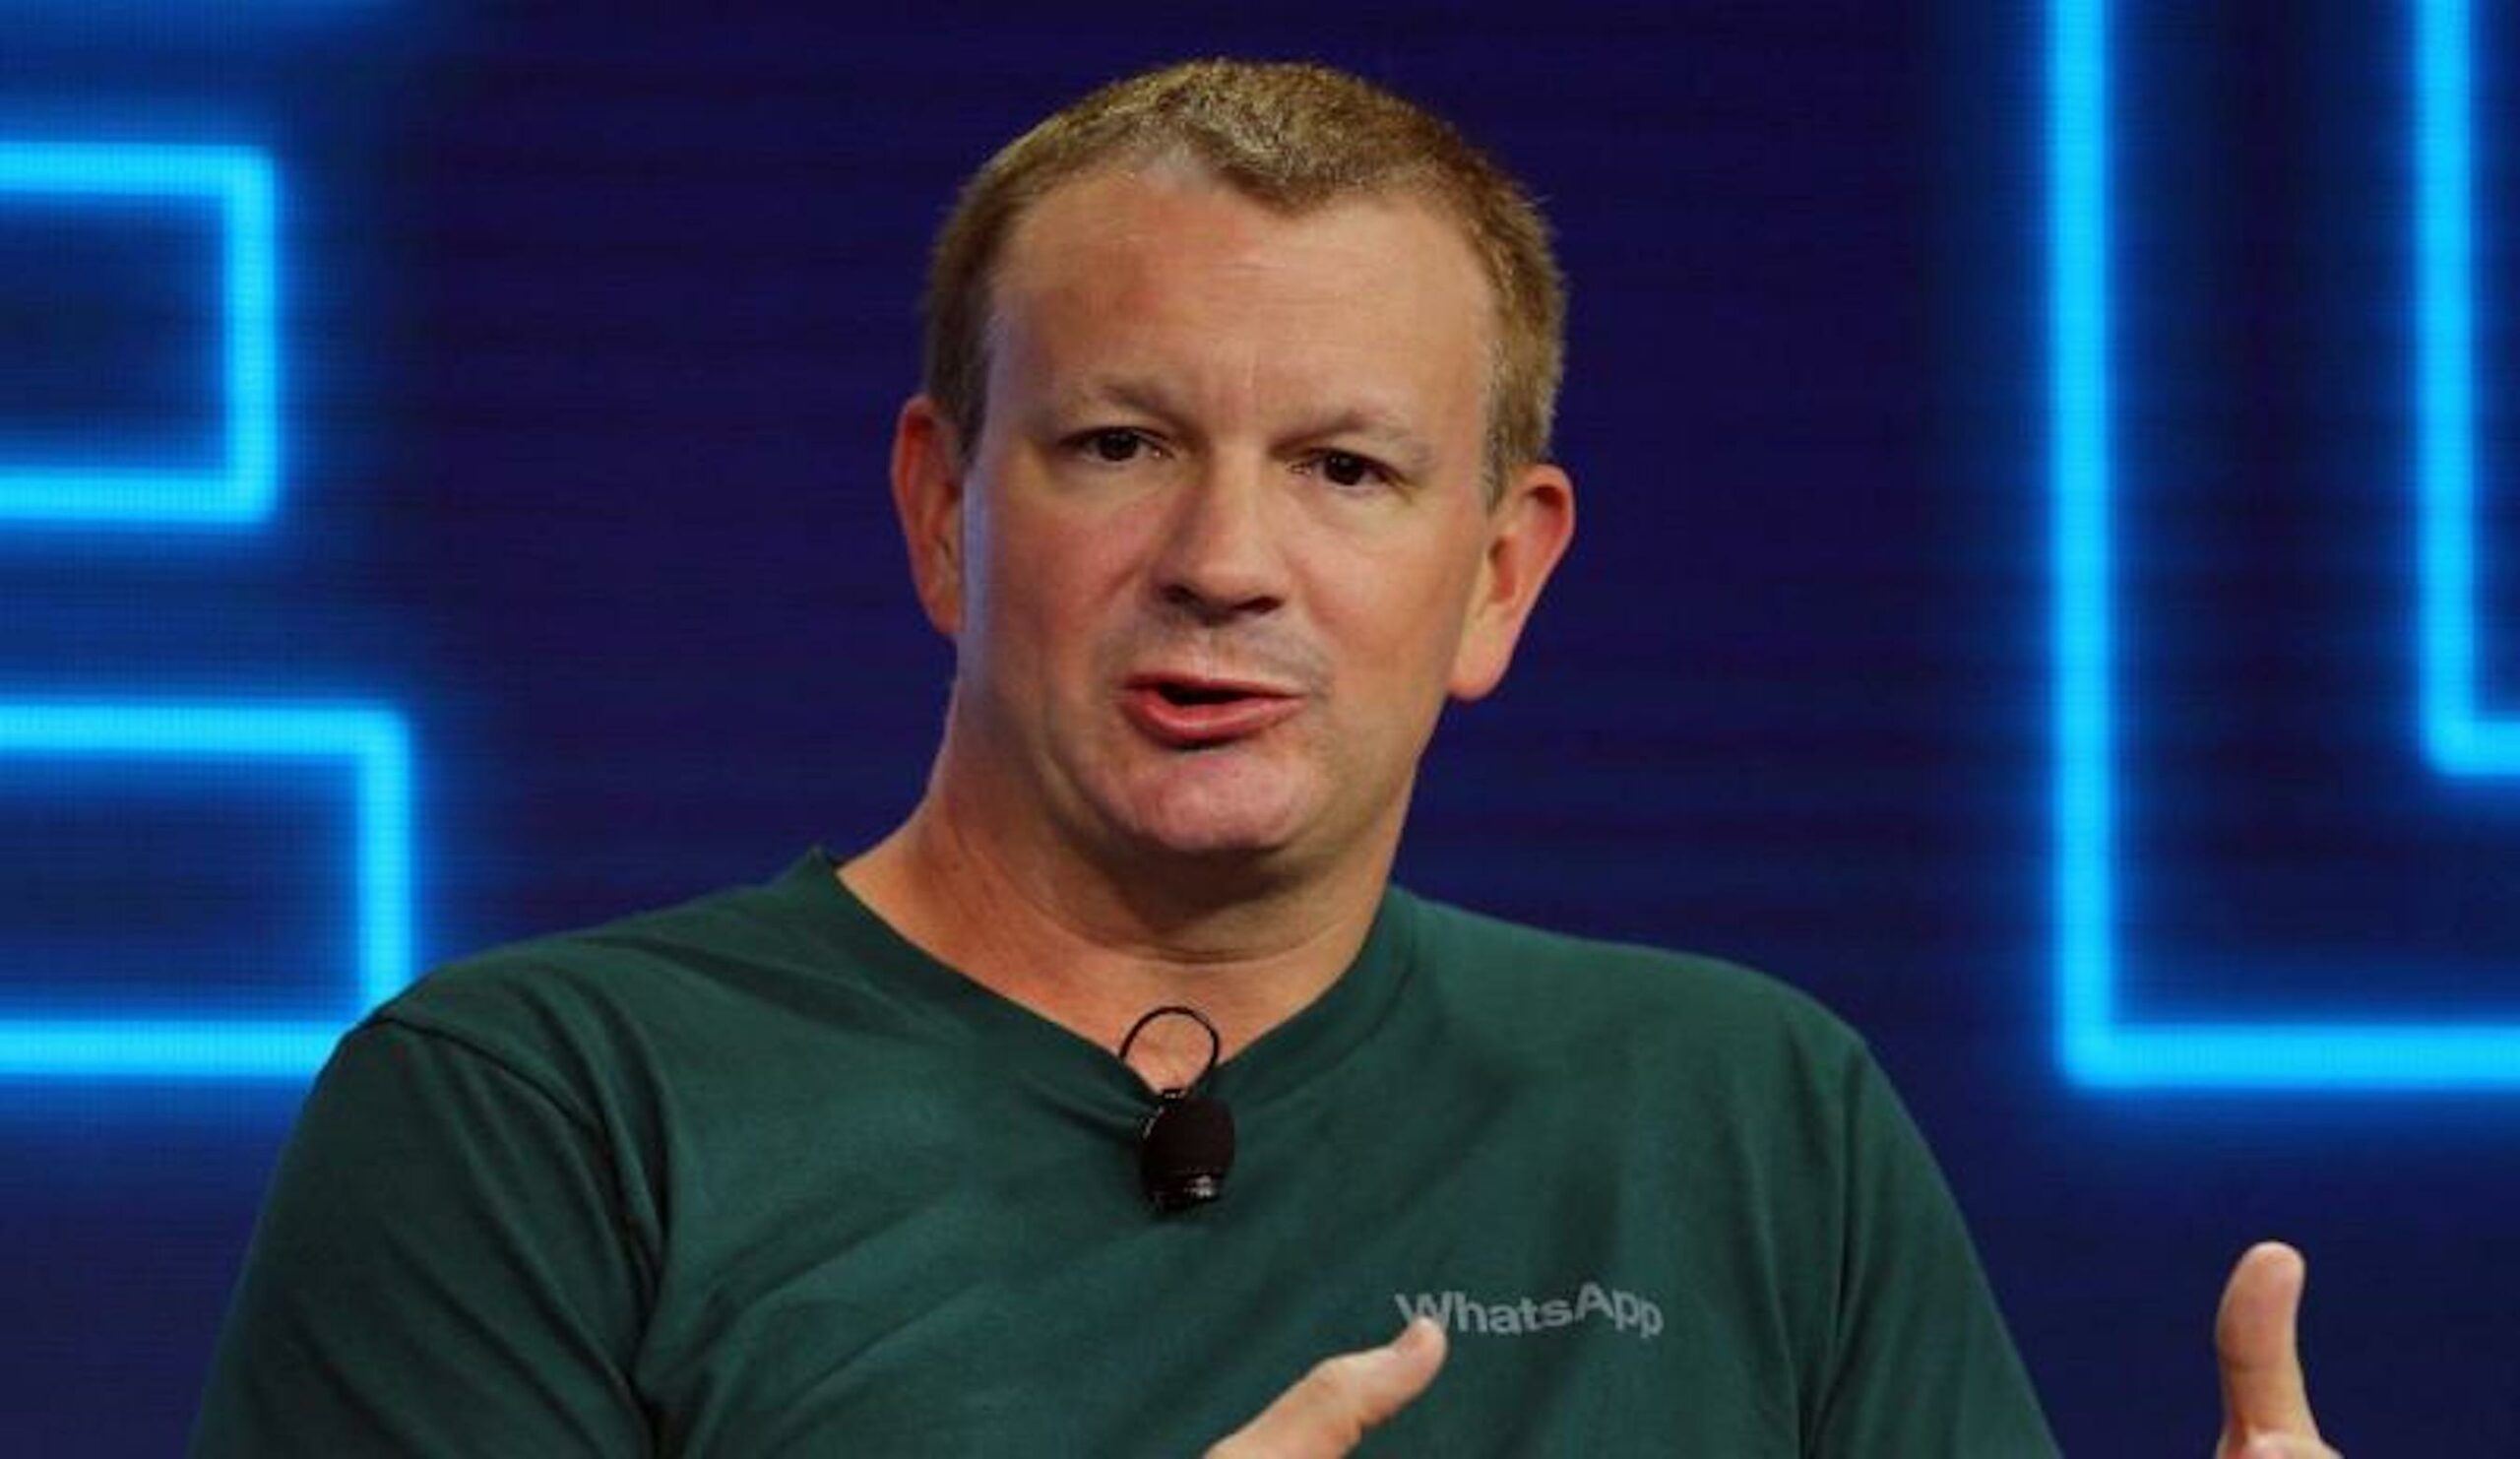 WhatsApp co-founder urges people to delete Facebook